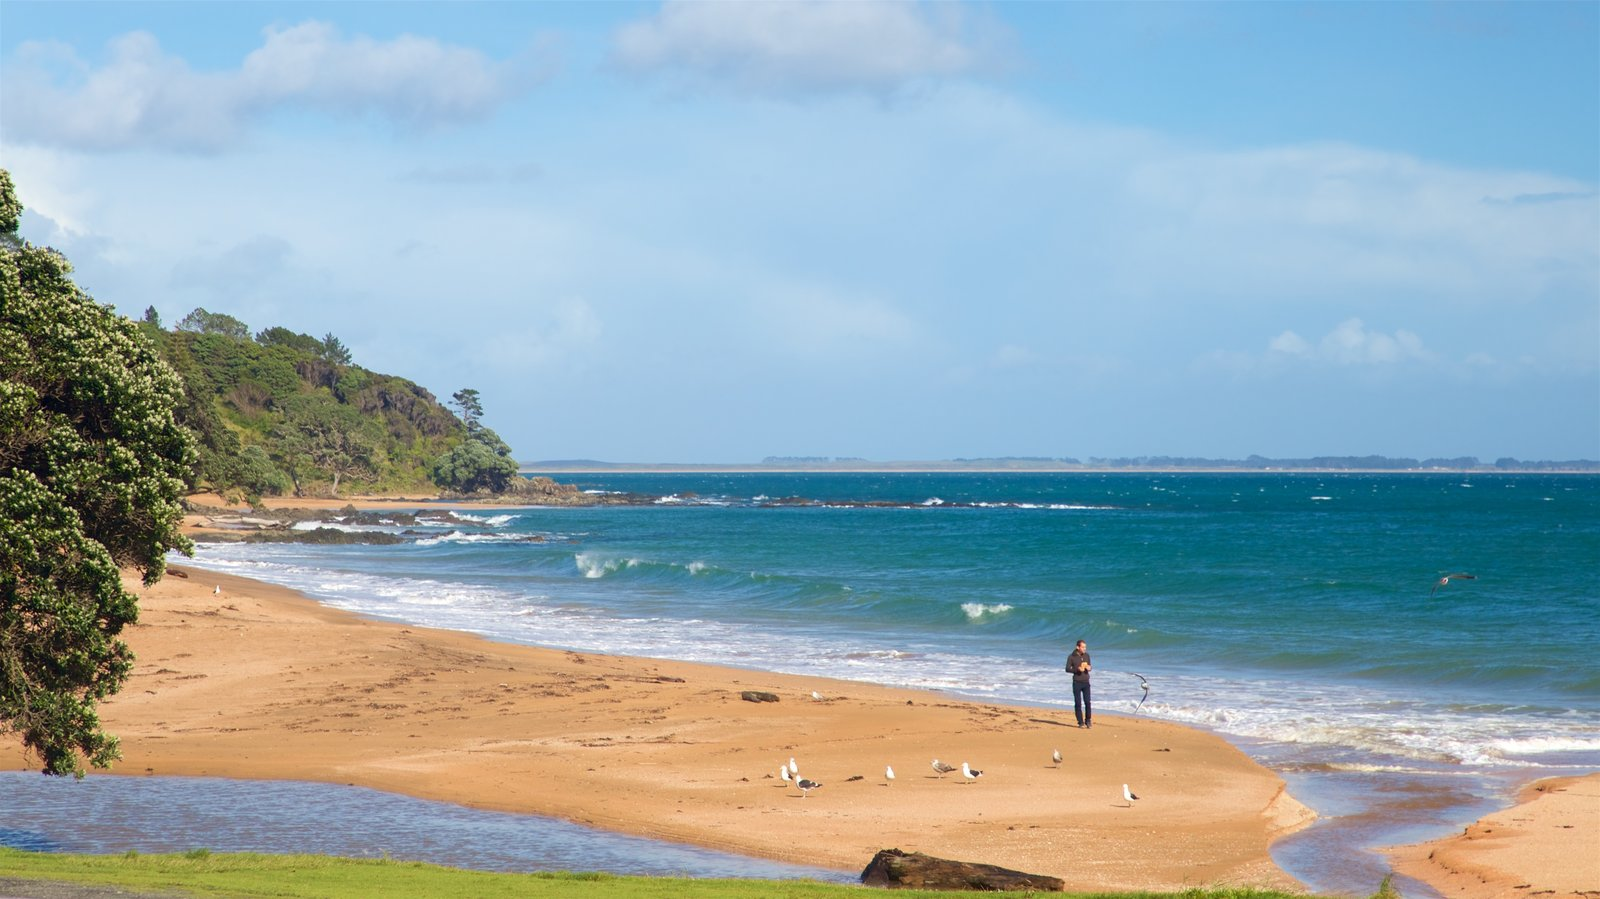 Cable Bay which includes a beach and general coastal views as well as an individual male